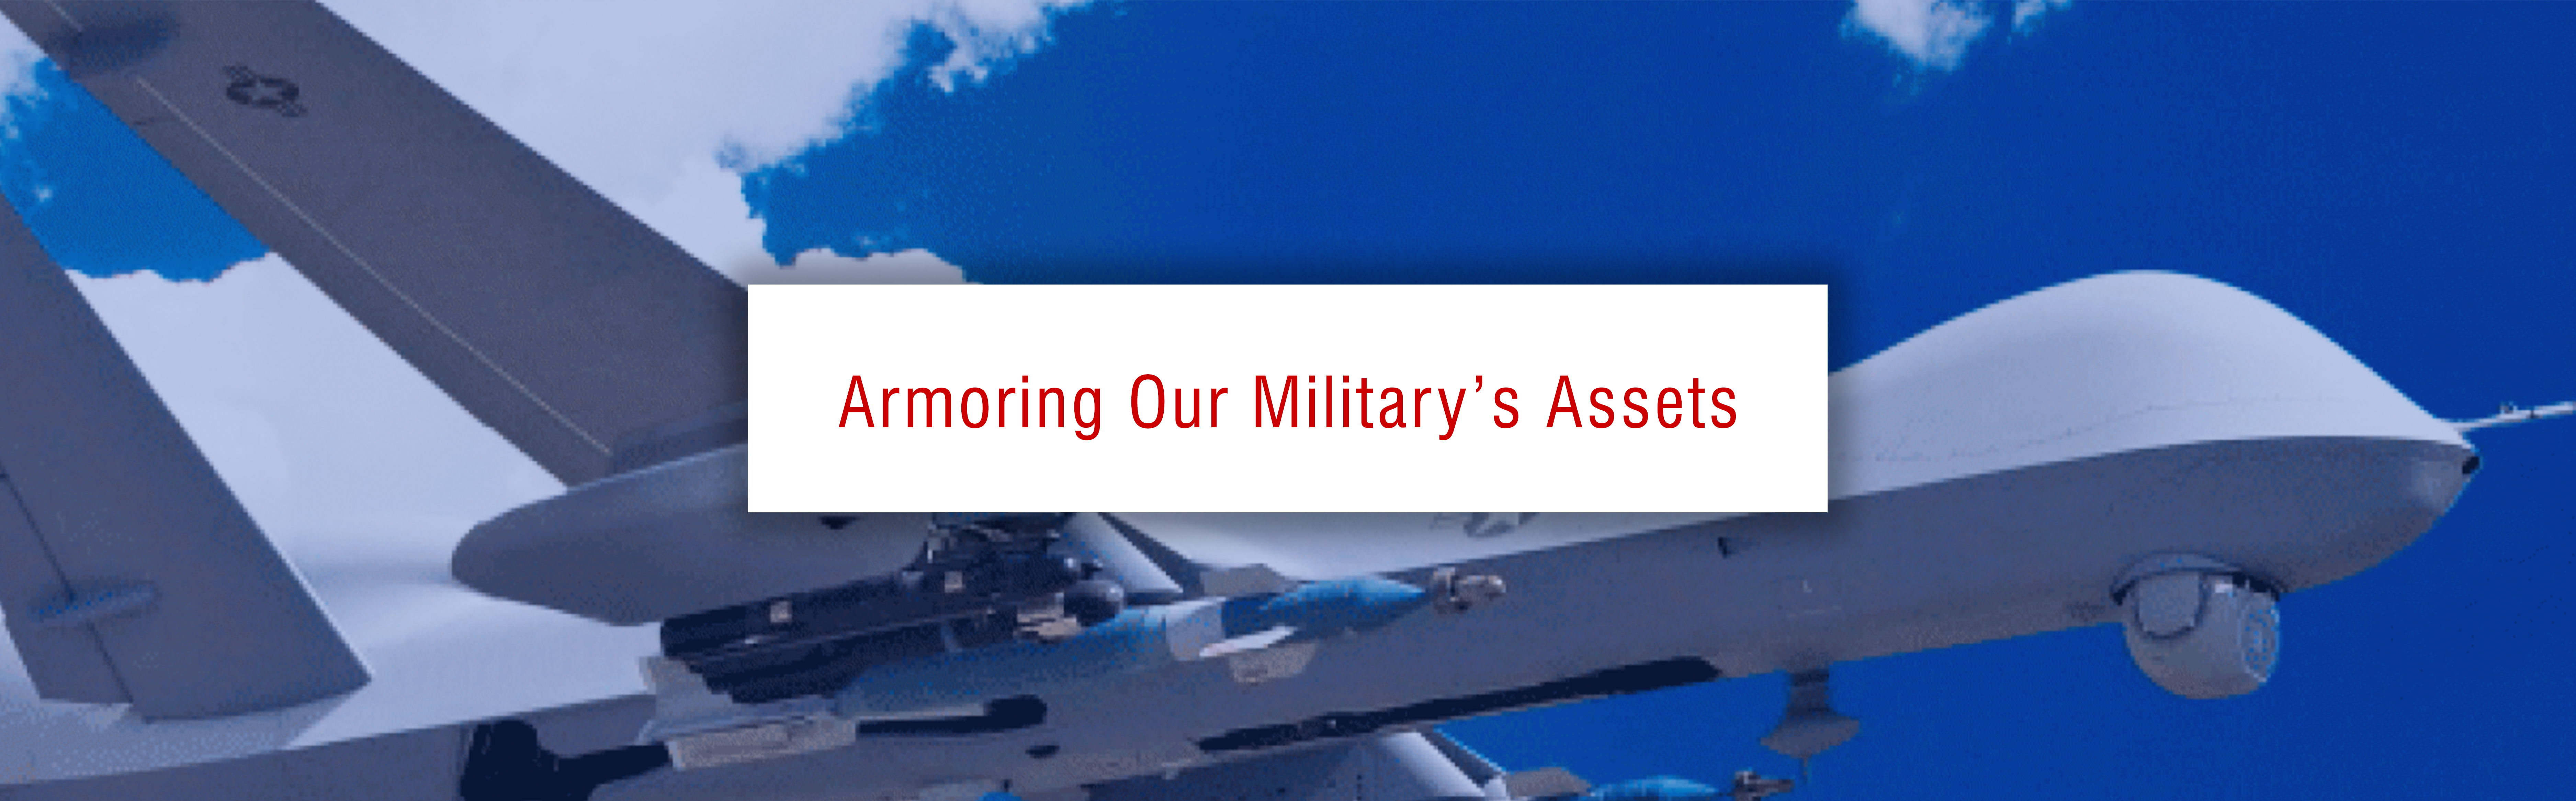 Armoring Our Military's Assets